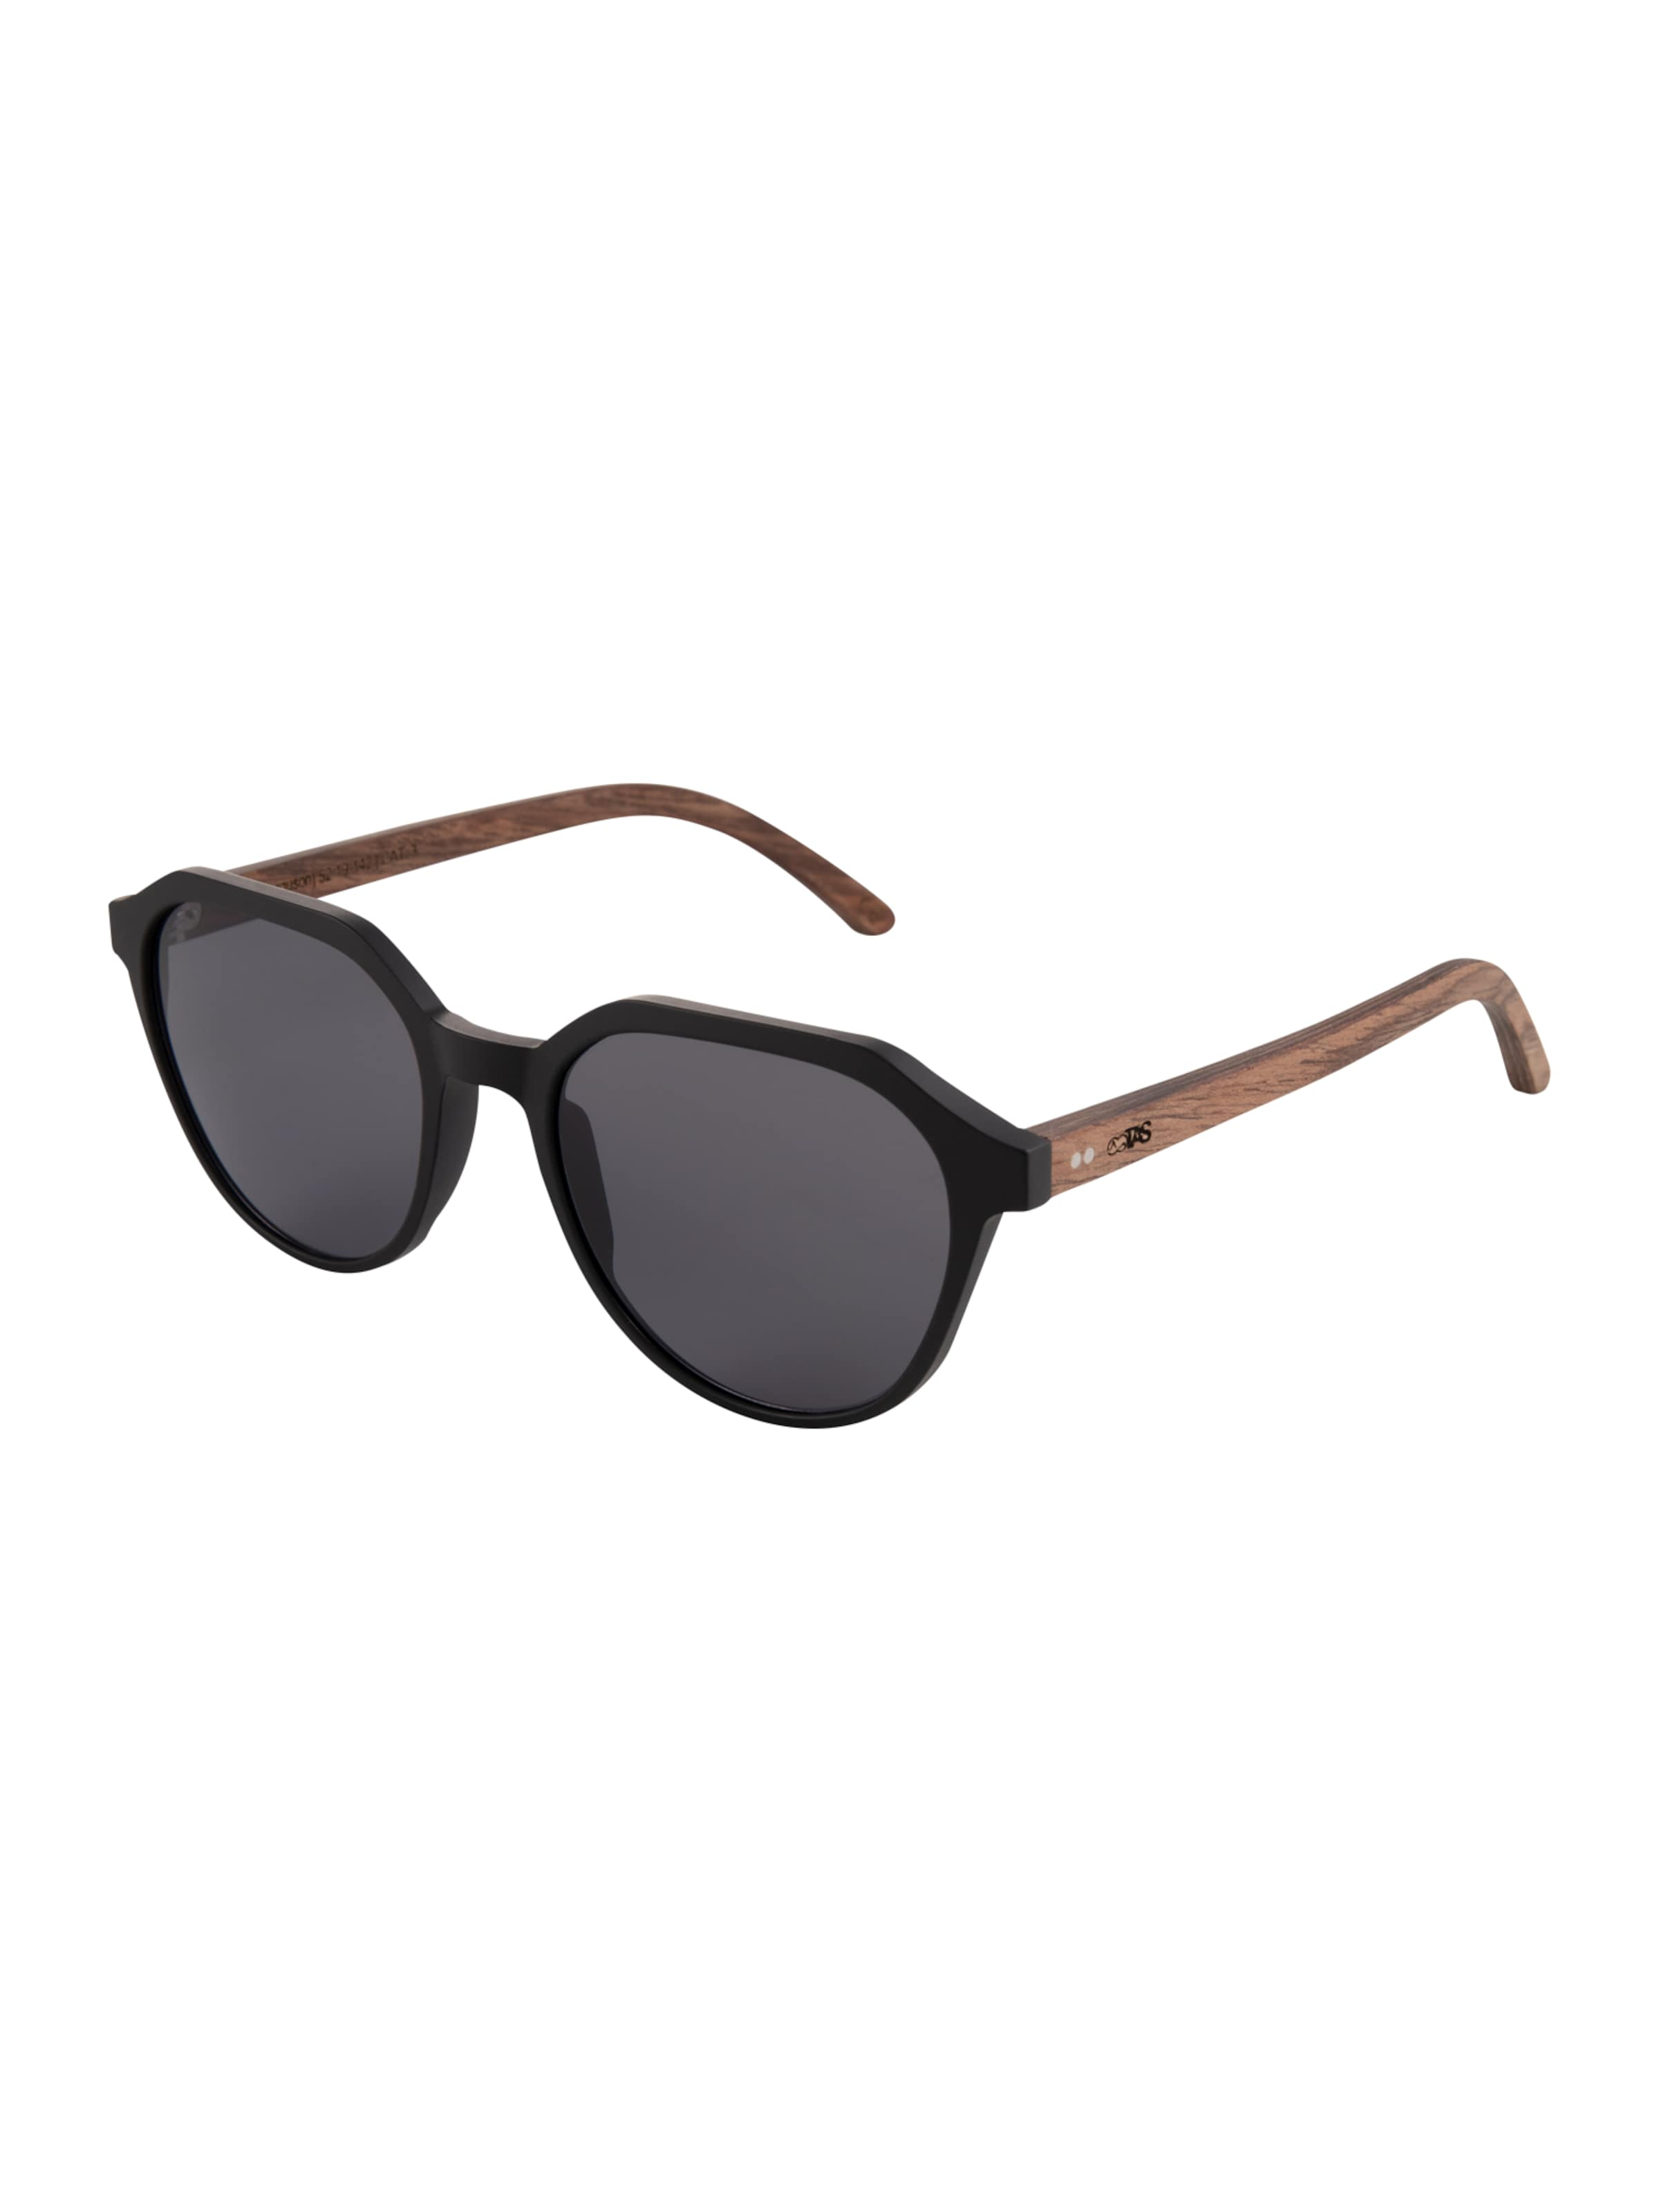 Take A In Shot Sonnenbrille 'verne Collection' BraunSchwarz WHED29IY